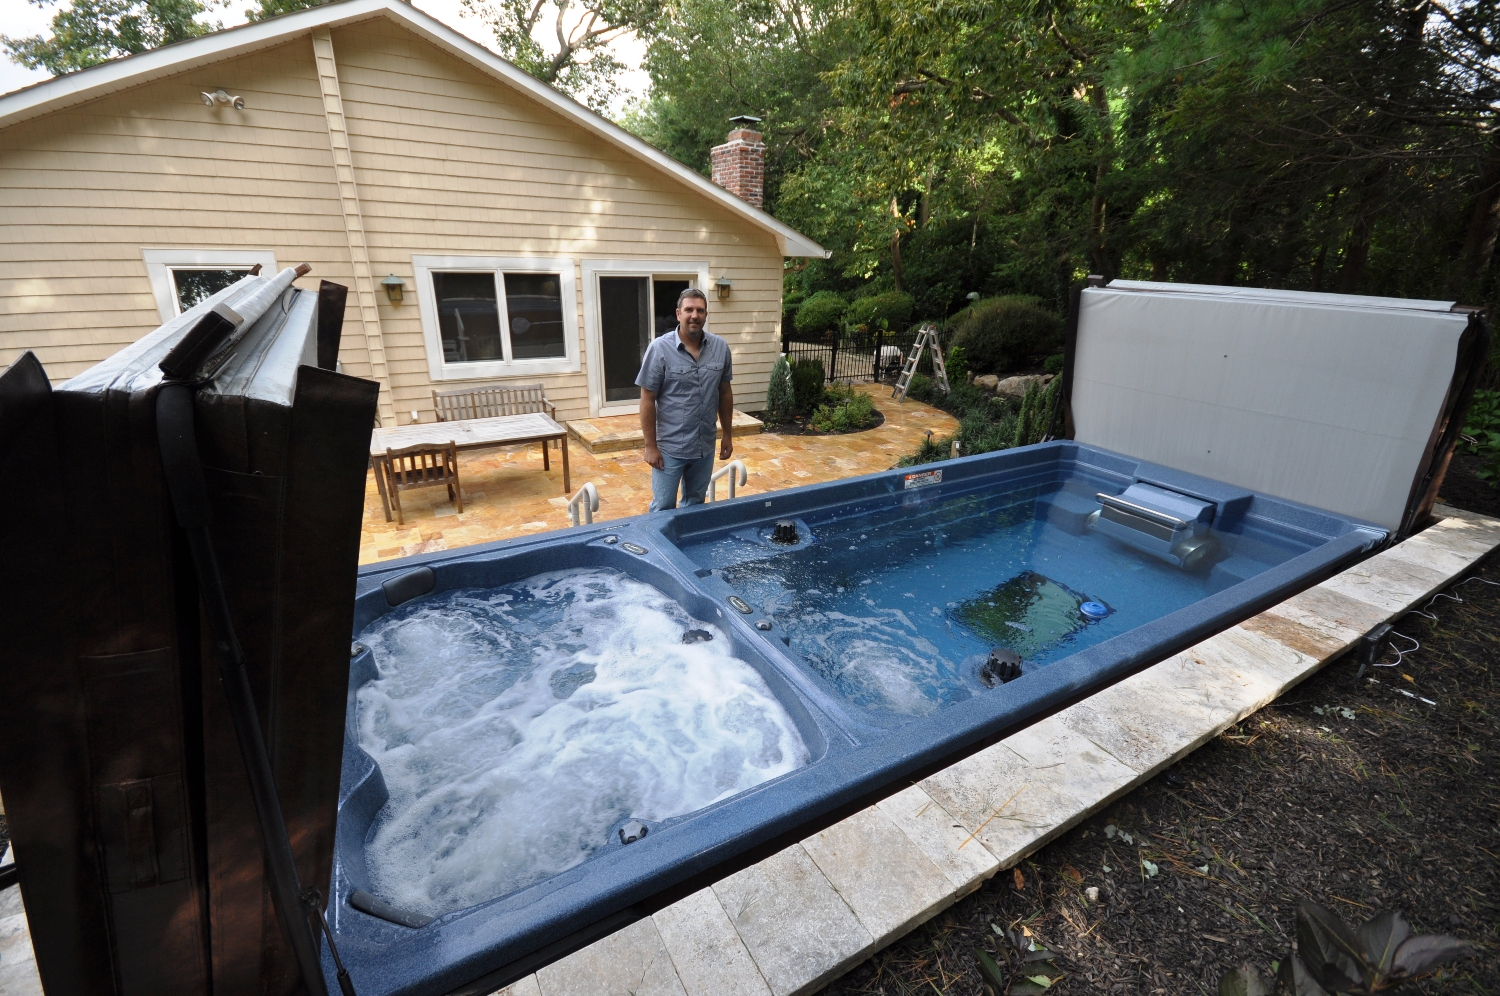 Hot tubs and swim spas gappsi giuseppe abbrancati for Swimming pool with spa